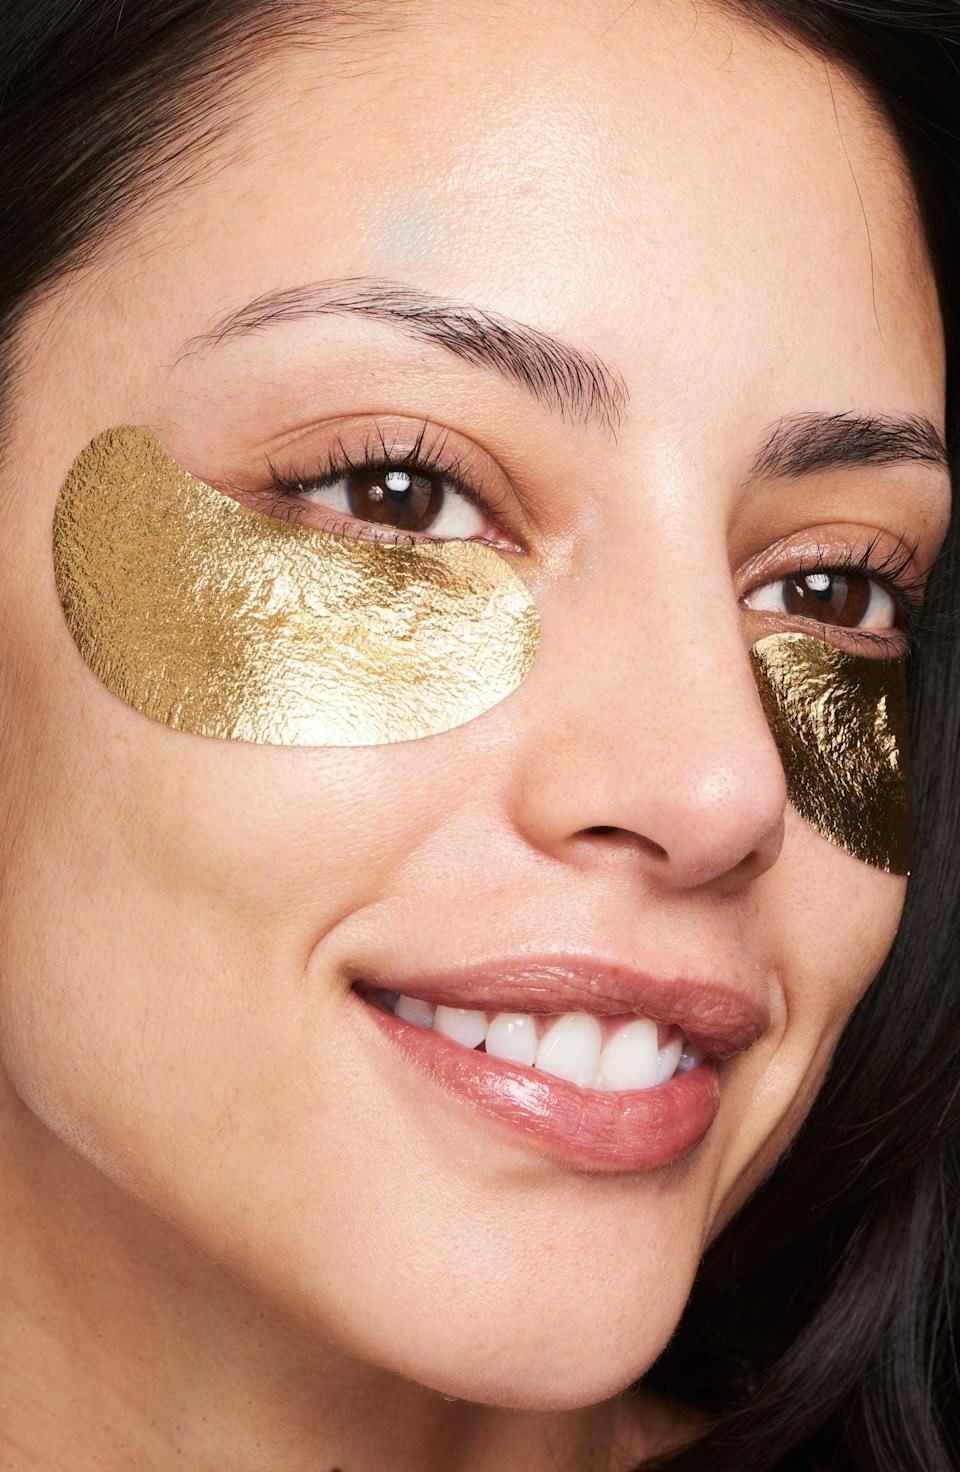 <p>Give their under eyes some extra love with the glamorous <span>Wander Beauty Baggage Claim Gold Eye Masks</span> ($25).</p>